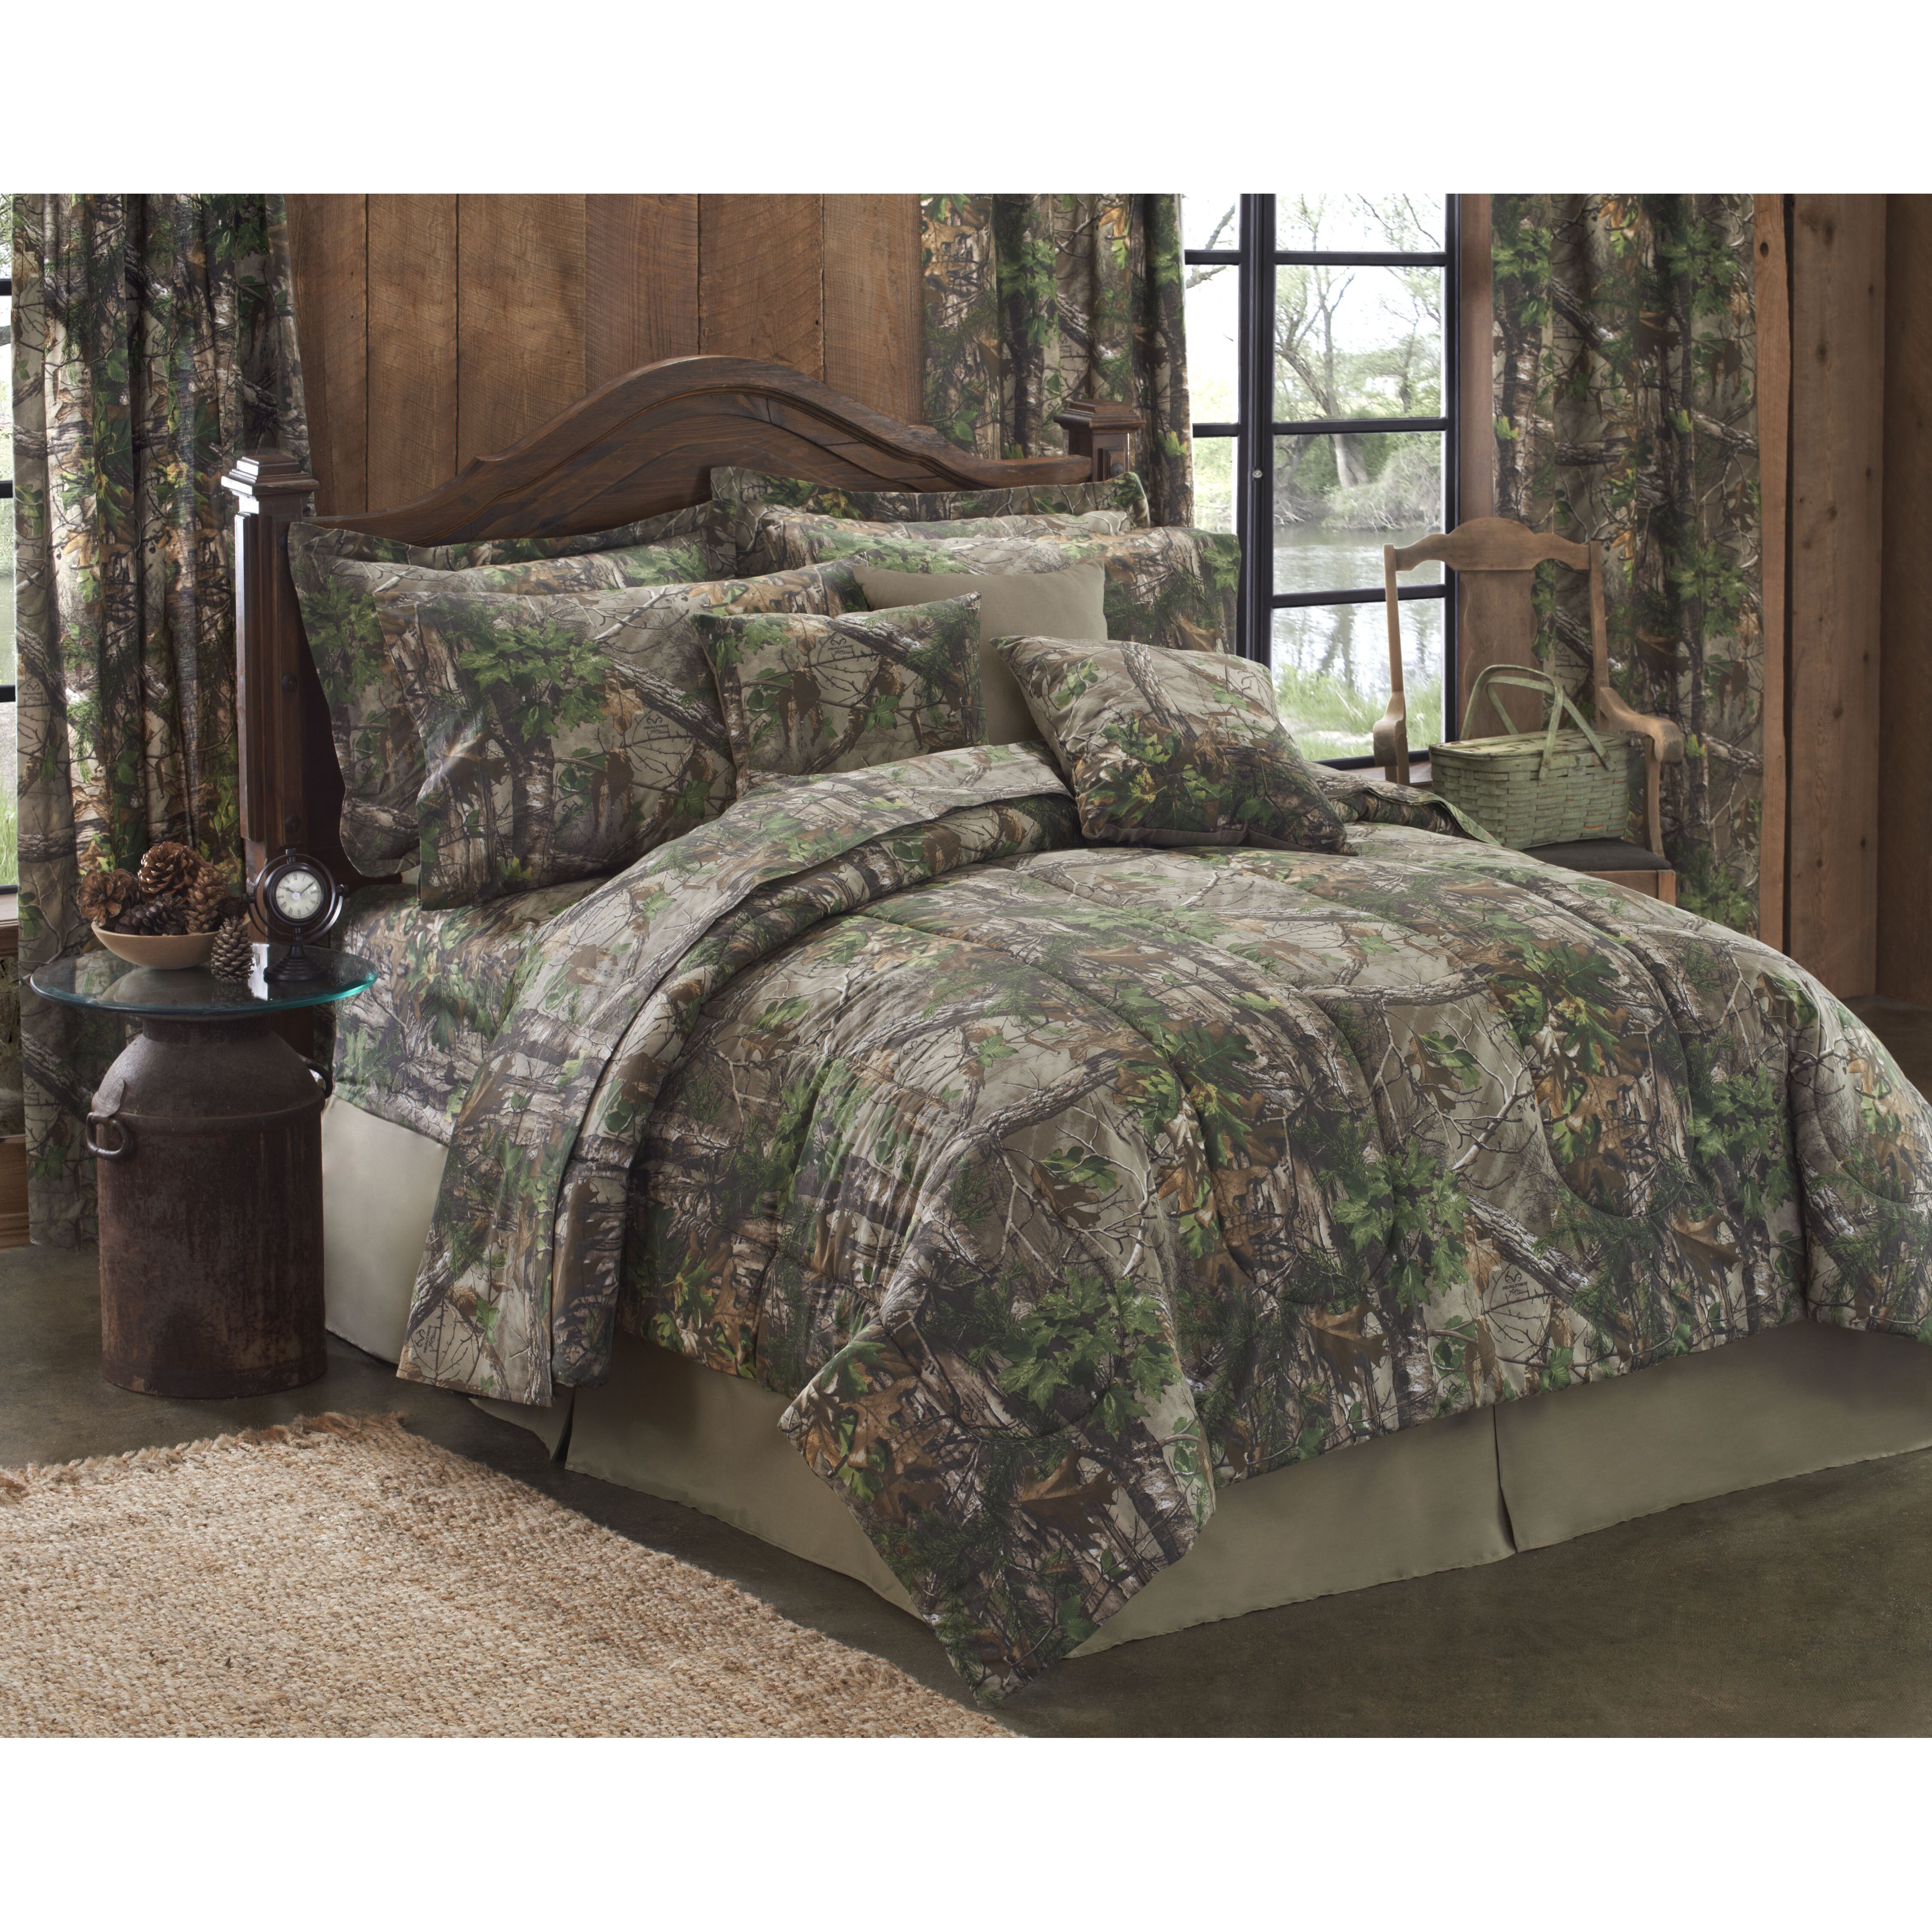 Marine Corps Bed Set